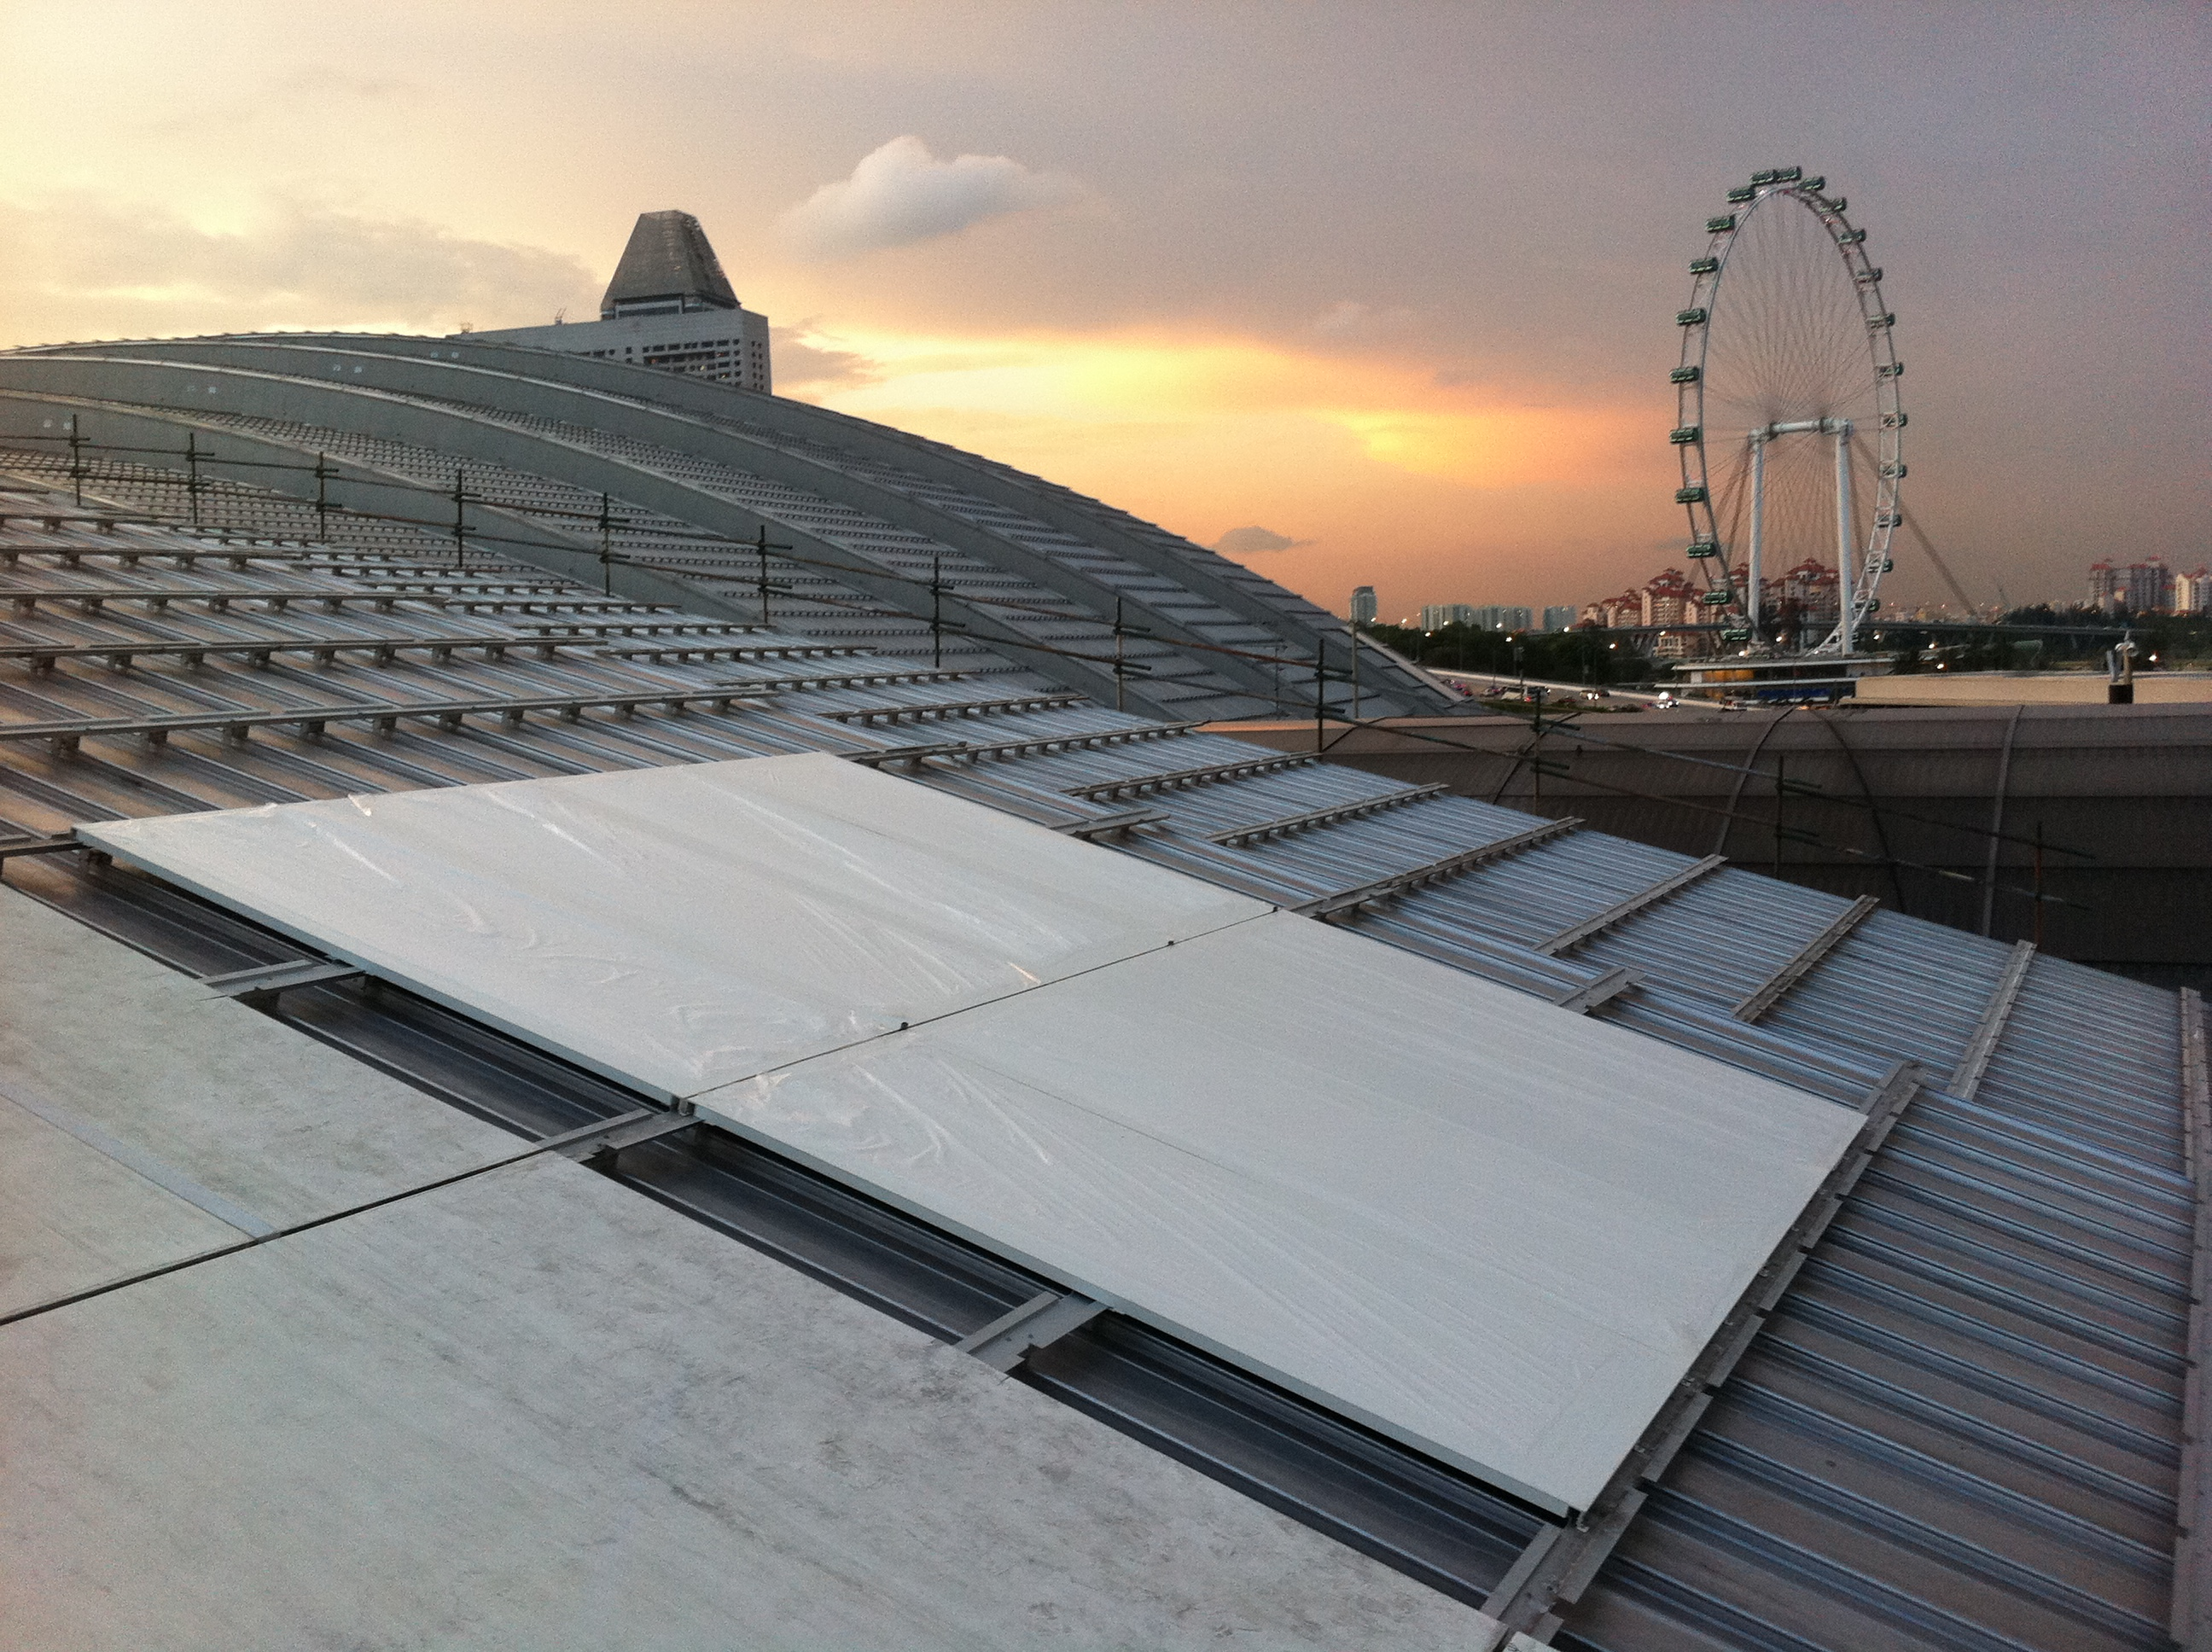 Marina Bay Sands Casino And Resort Roof Cladding Craft